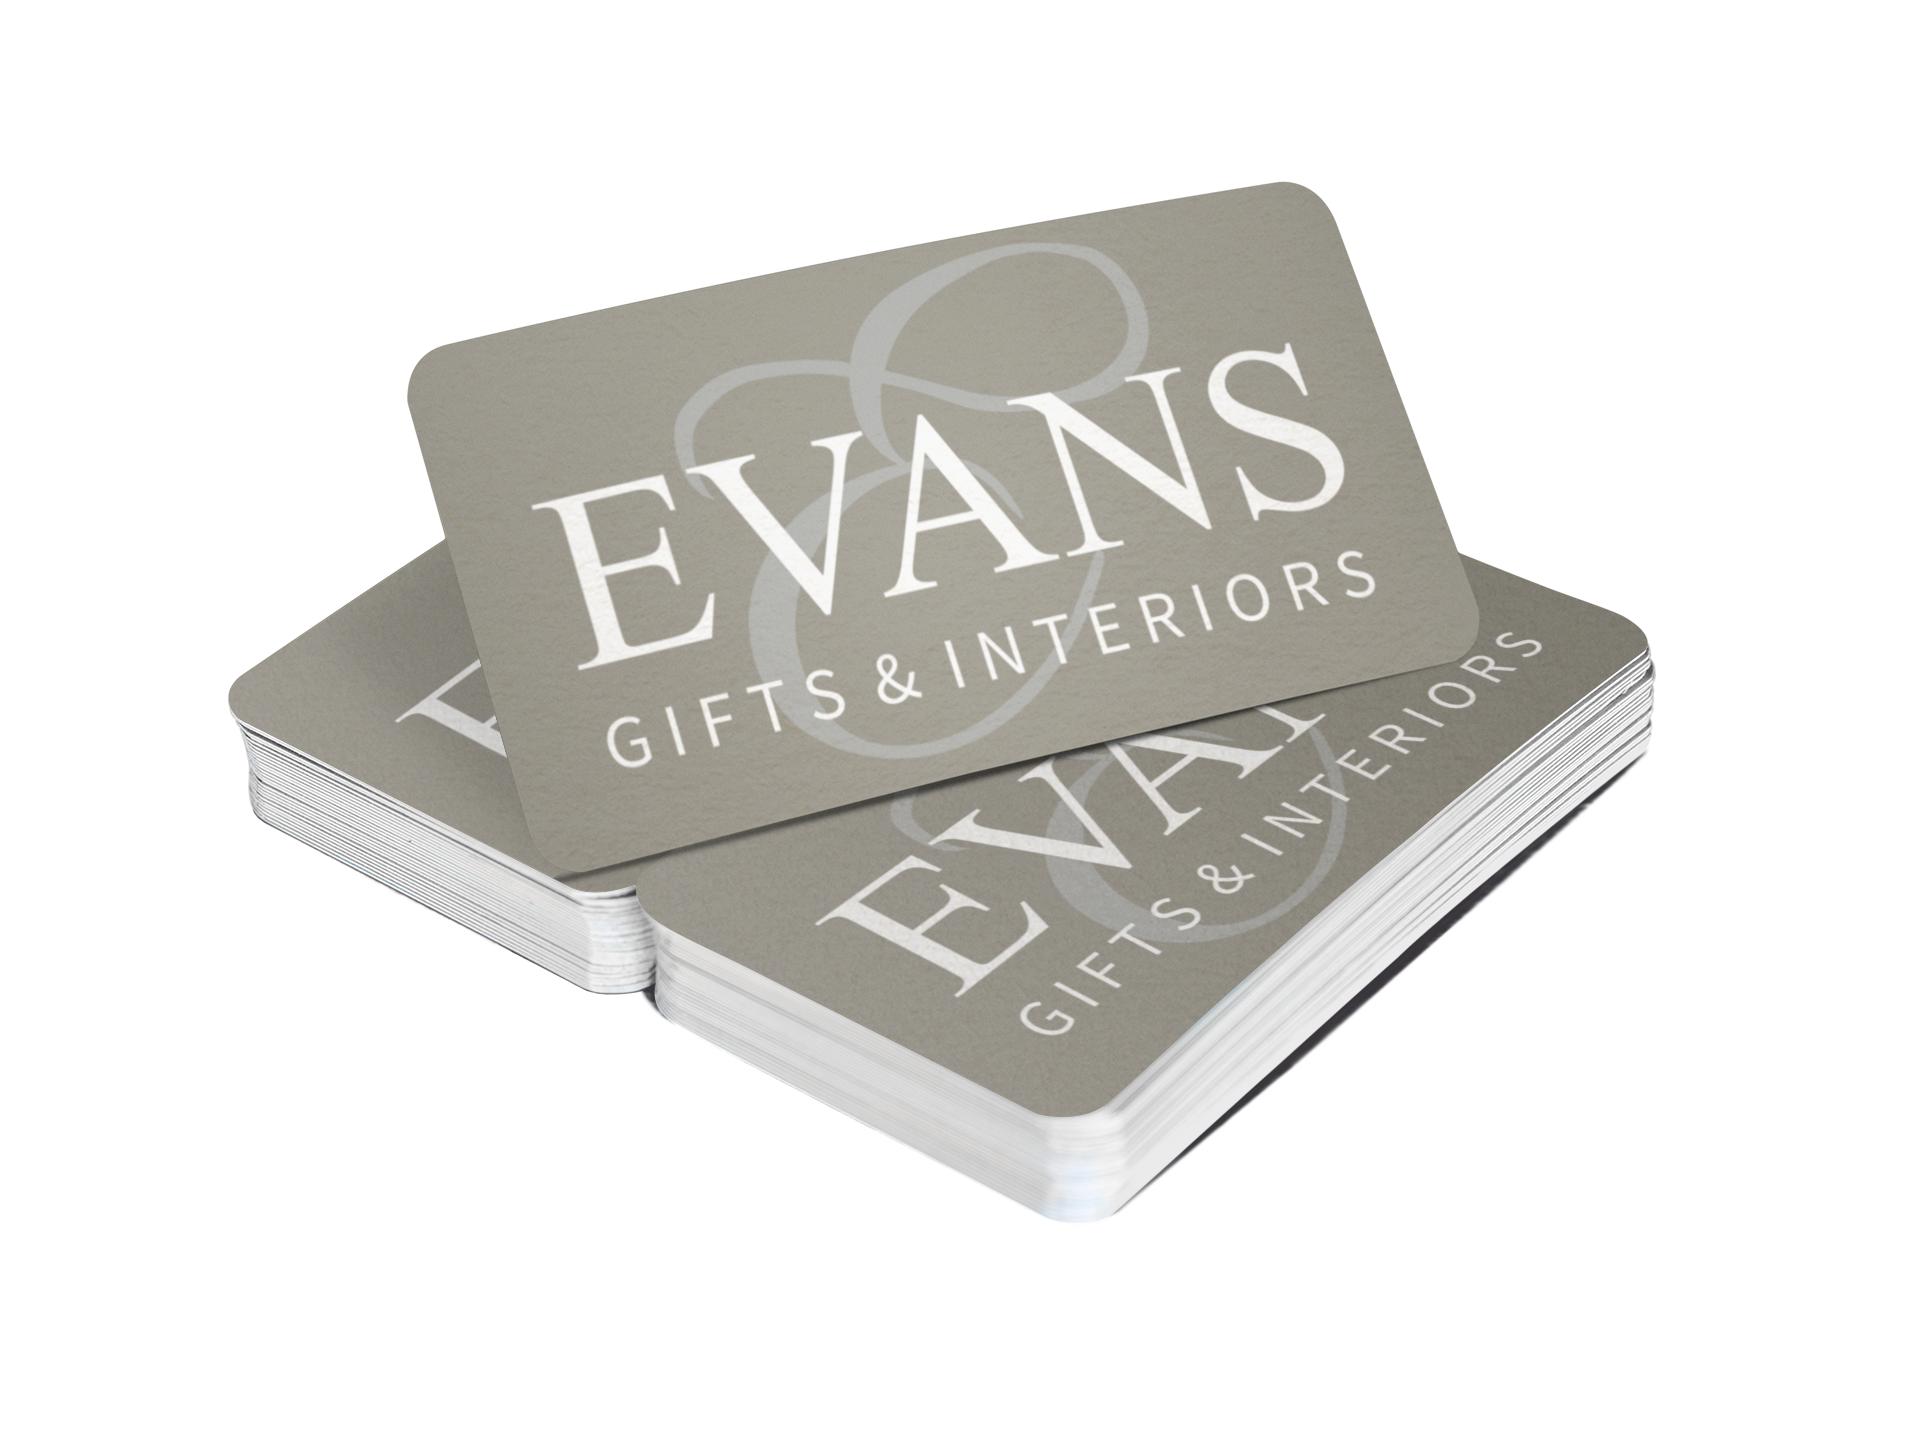 Evans-Gifts-Logo Digital Marketing Agency Colchester